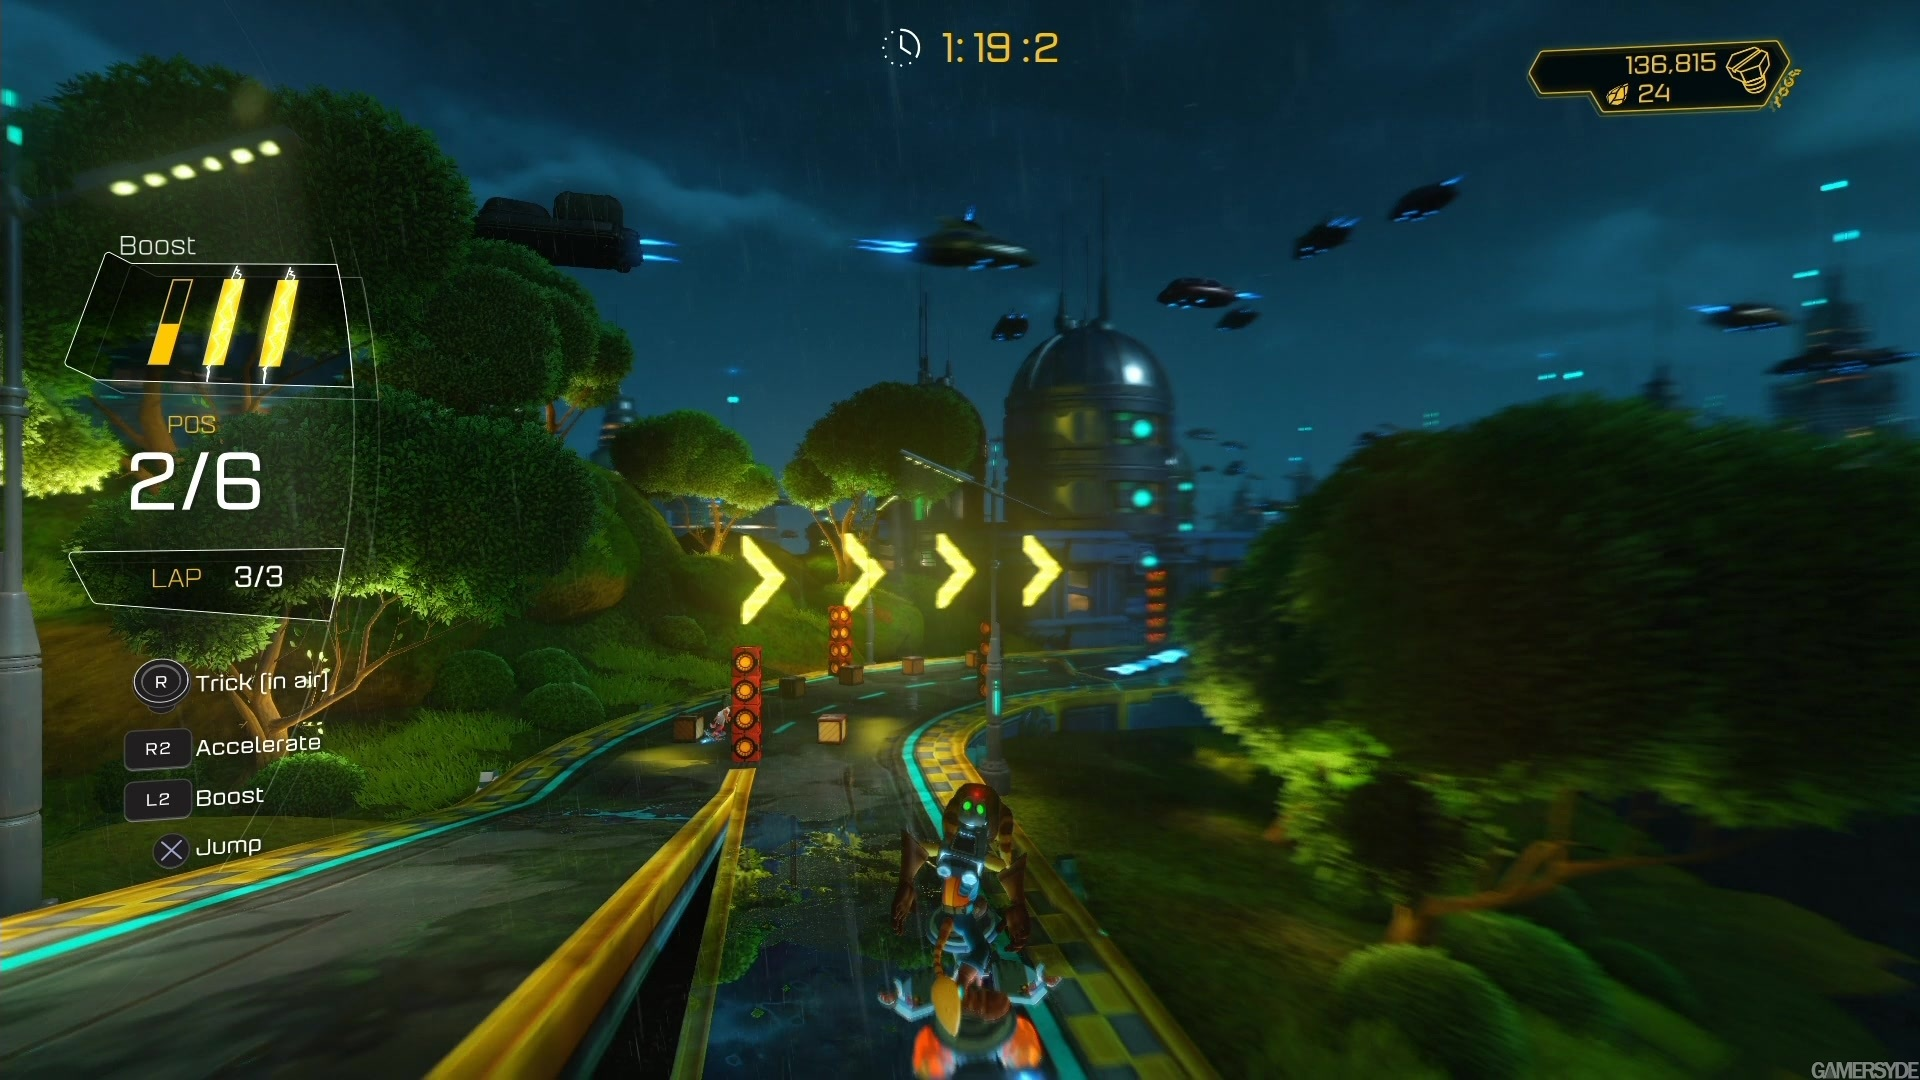 Galerie Ratchet Clank Fichier Hoverboard 1920x1080 2016 04